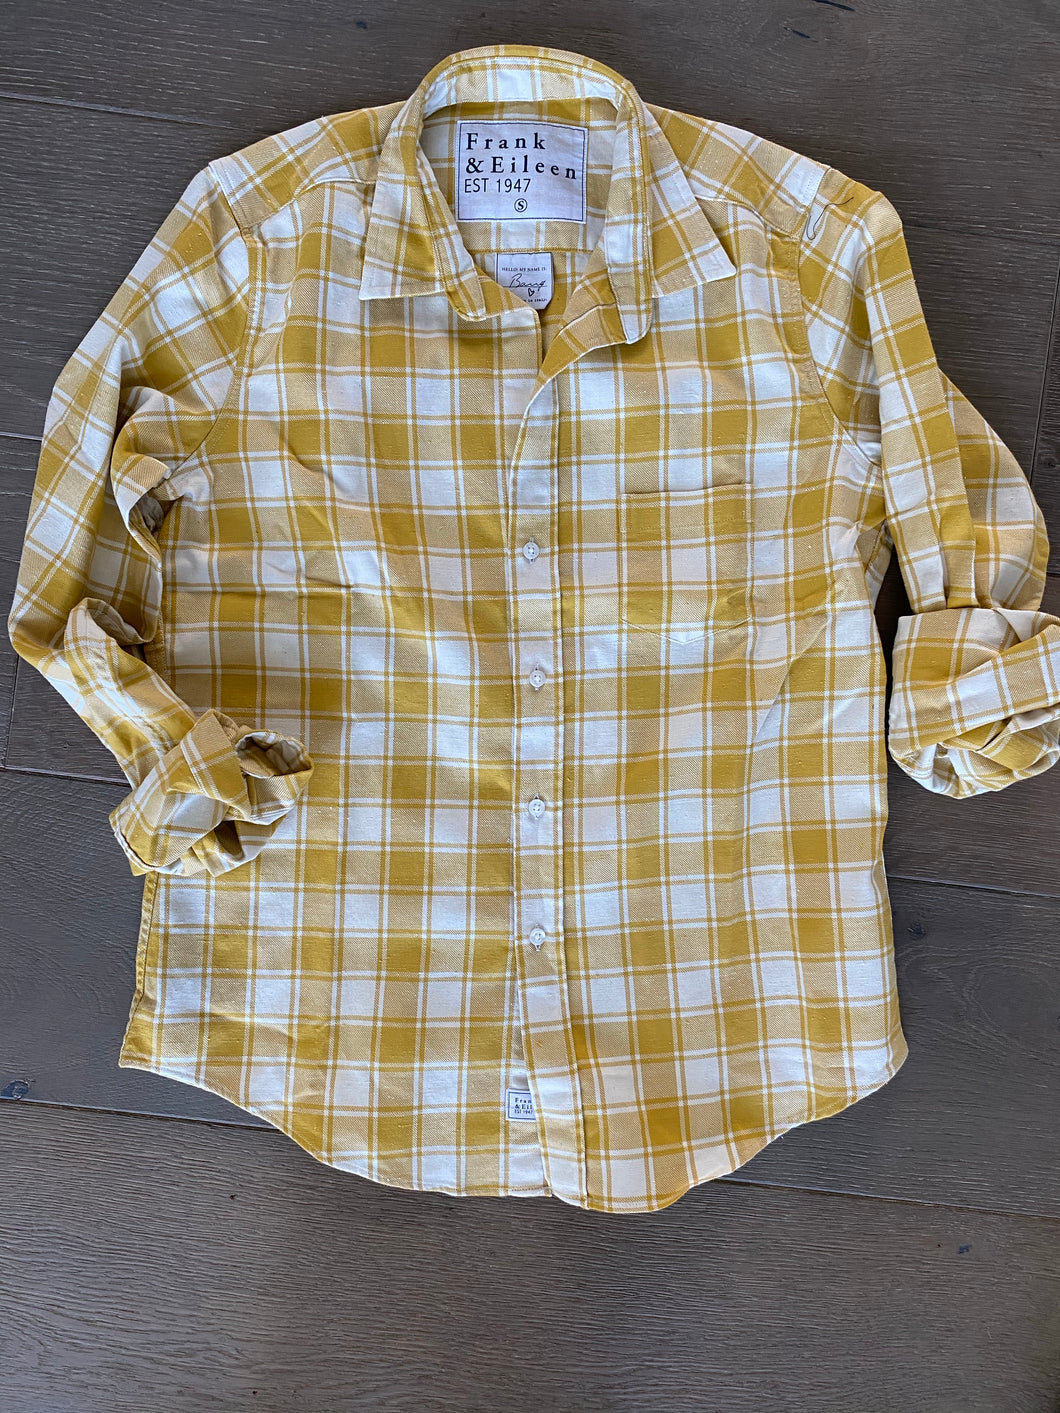 F&E Mustard Barry Flannel Shirt